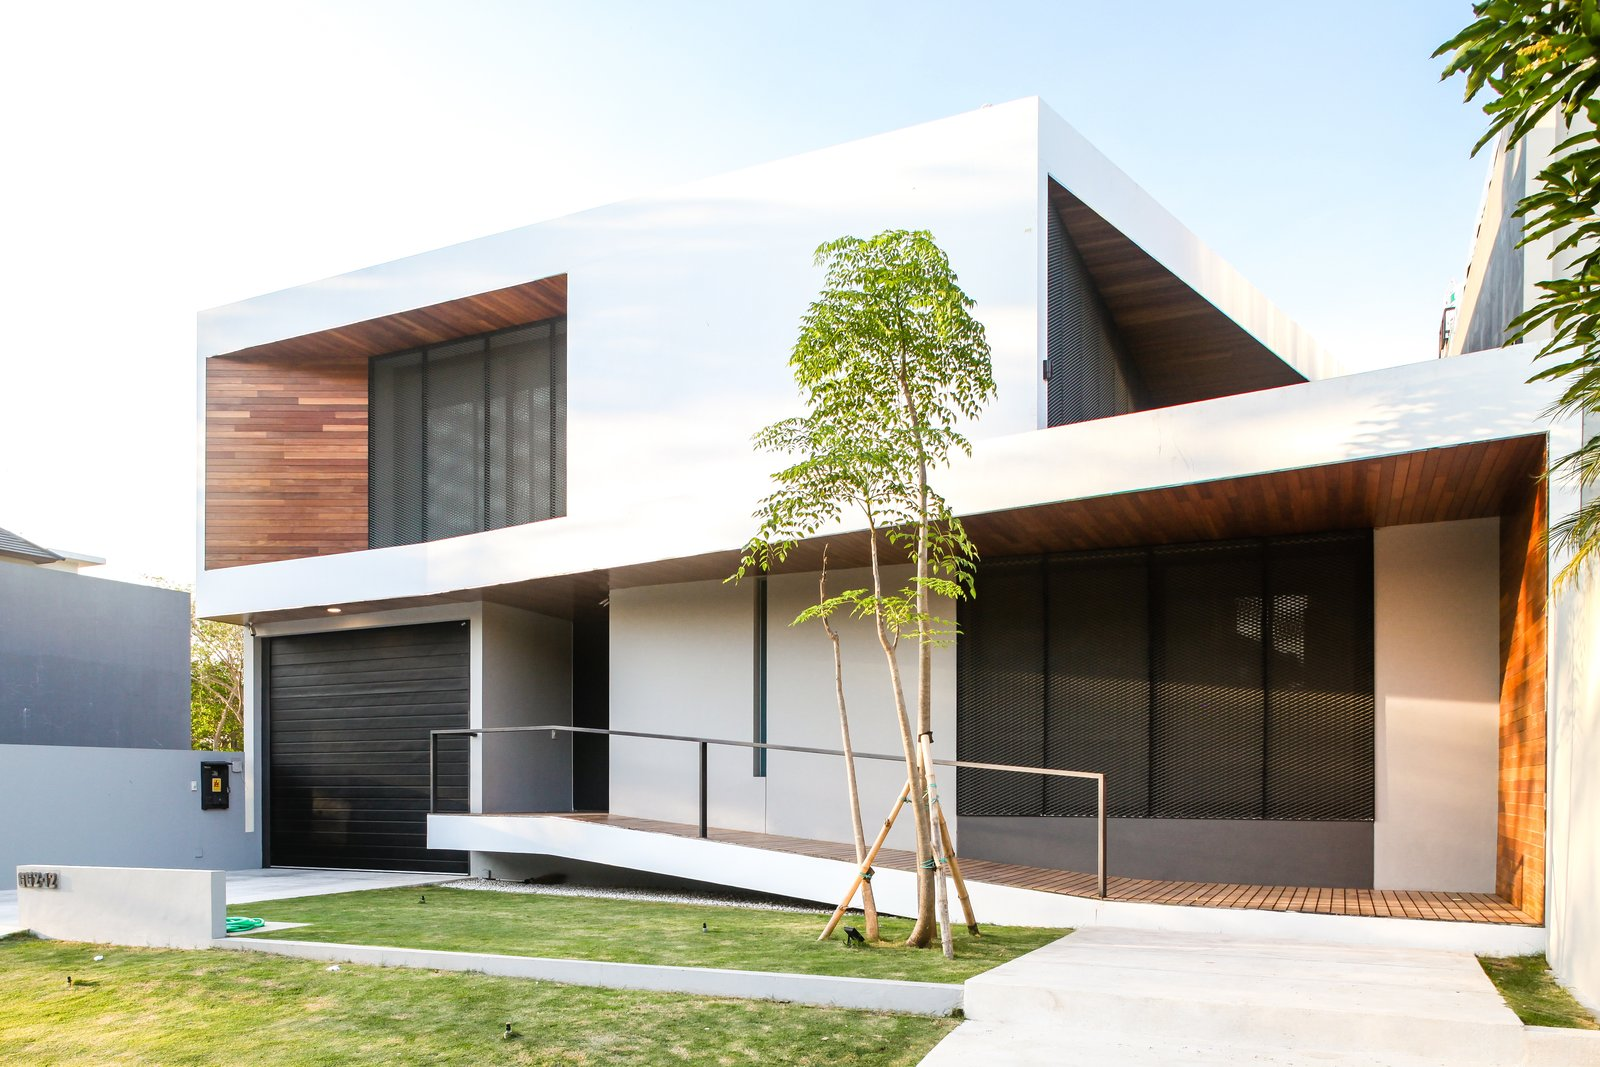 Exterior, Wood Siding Material, House Building Type, Flat RoofLine, Mid-Century Building Type, Stucco Siding Material, and Metal Siding Material  JV House by Ivan Priatman Architecture